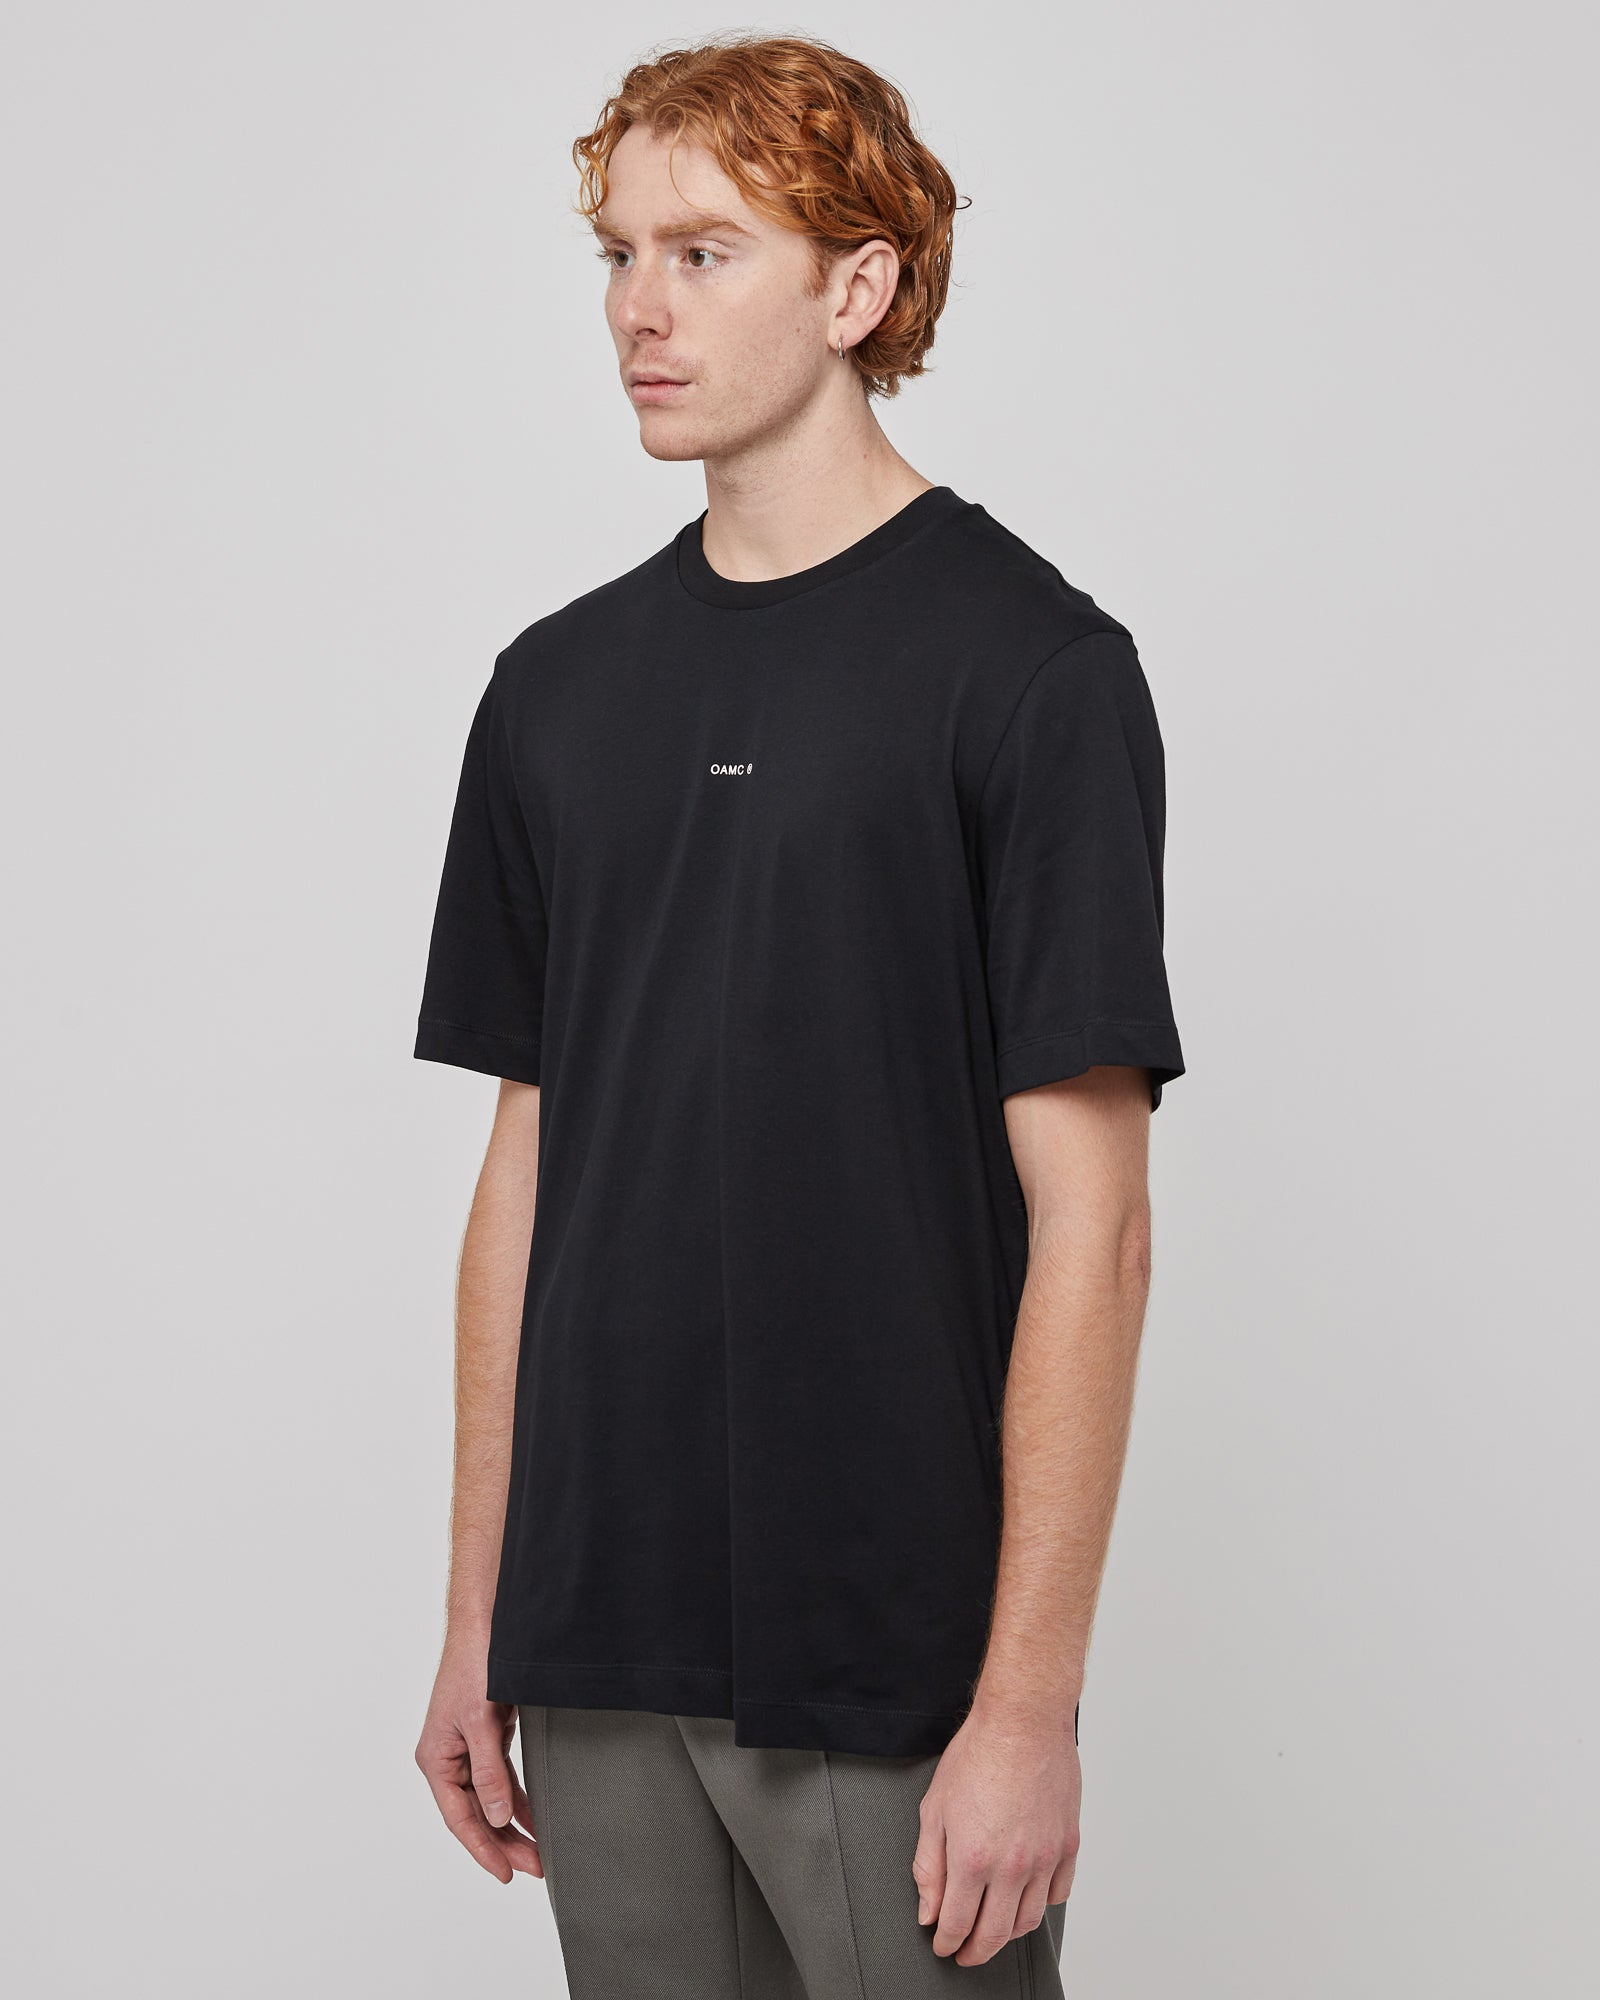 Mark T-Shirt in Black